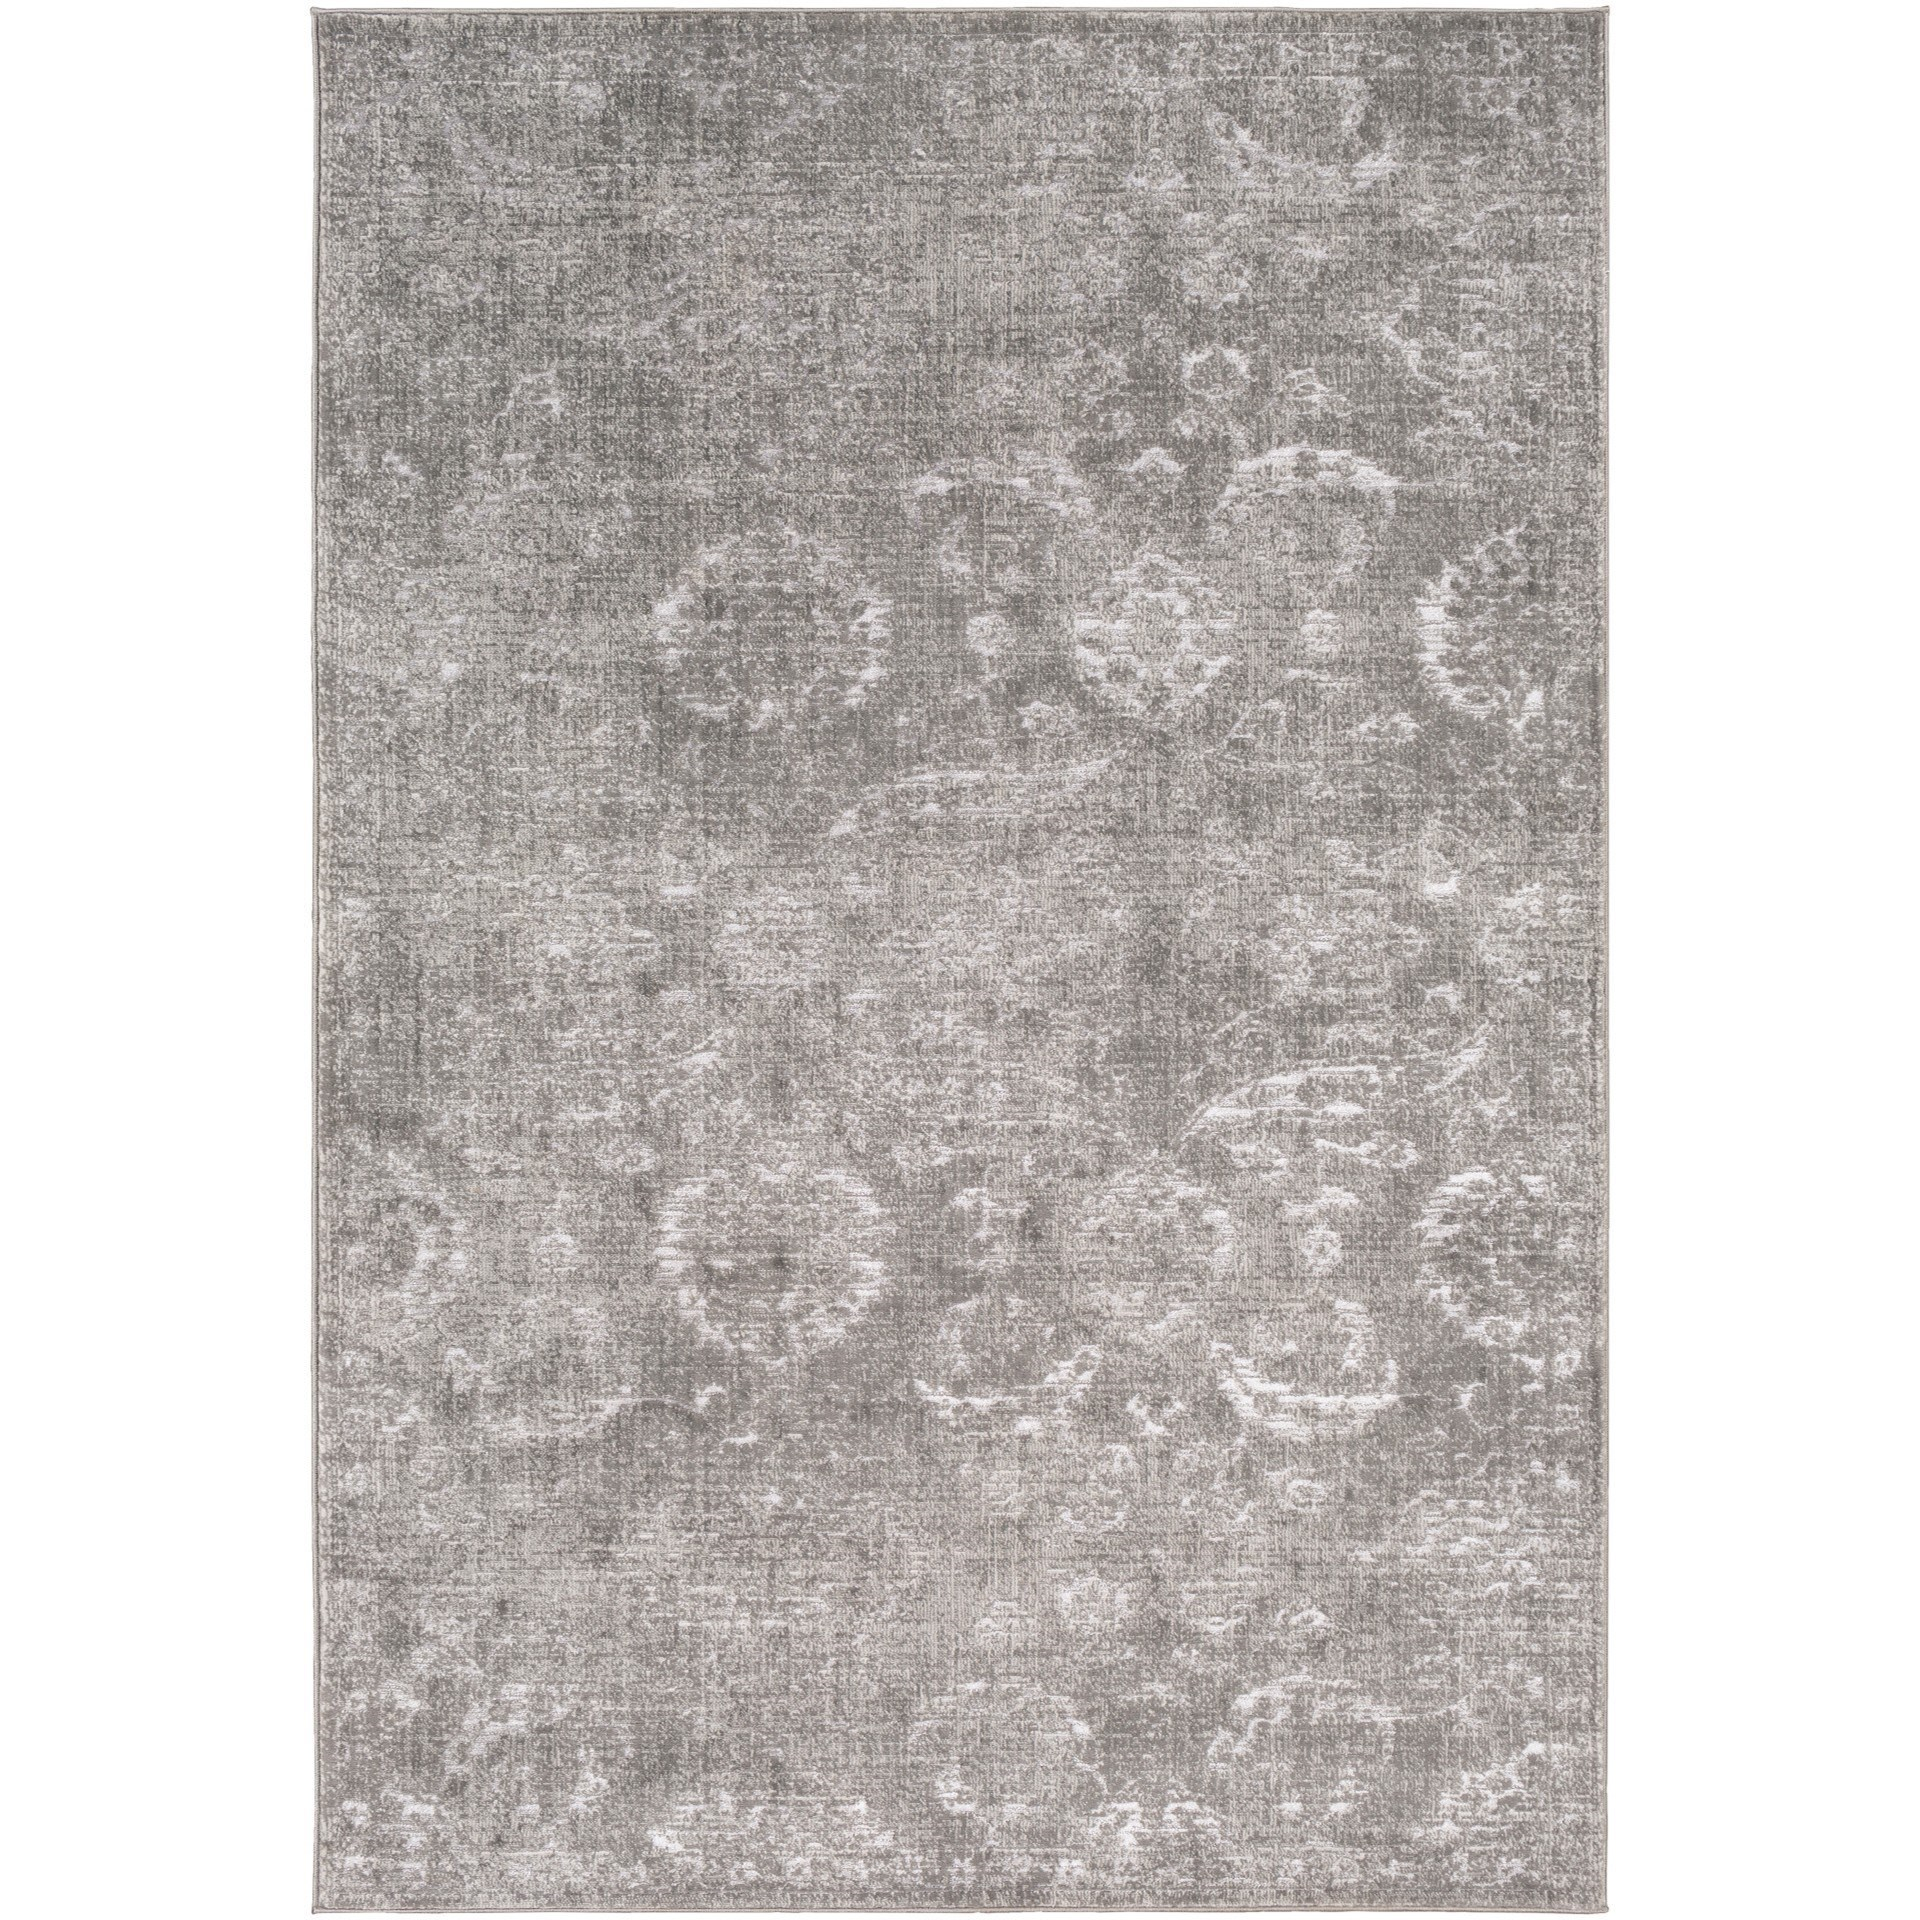 """Florence 9' x 12'4"""" Rug by Surya at Miller Waldrop Furniture and Decor"""